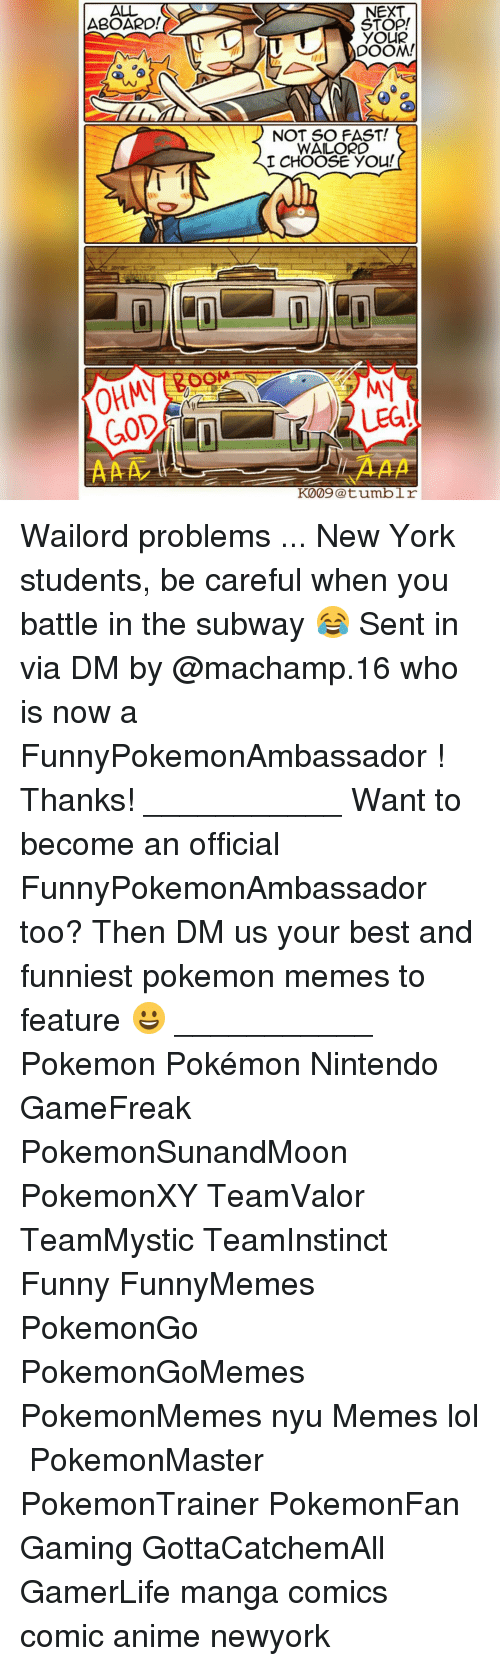 Memes, Pokemon, and Subway: ALL  ABOARD!  GOD  NEXT  YOUR  DOOM!  NOT SO FAST!  WAILORD  I CHOOSE YOU!  LEG!  K009 @tumblr Wailord problems ... New York students, be careful when you battle in the subway 😂 Sent in via DM by @machamp.16 who is now a FunnyPokemonAmbassador ! Thanks! ___________ Want to become an official FunnyPokemonAmbassador too? Then DM us your best and funniest pokemon memes to feature 😀 ___________ Pokemon Pokémon Nintendo GameFreak PokemonSunandMoon PokemonXY TeamValor TeamMystic TeamInstinct Funny FunnyMemes PokemonGo PokemonGoMemes PokemonMemes nyu Memes lol ポケットモンスター PokemonMaster PokemonTrainer PokemonFan Gaming GottaCatchemAll GamerLife manga comics comic anime newyork